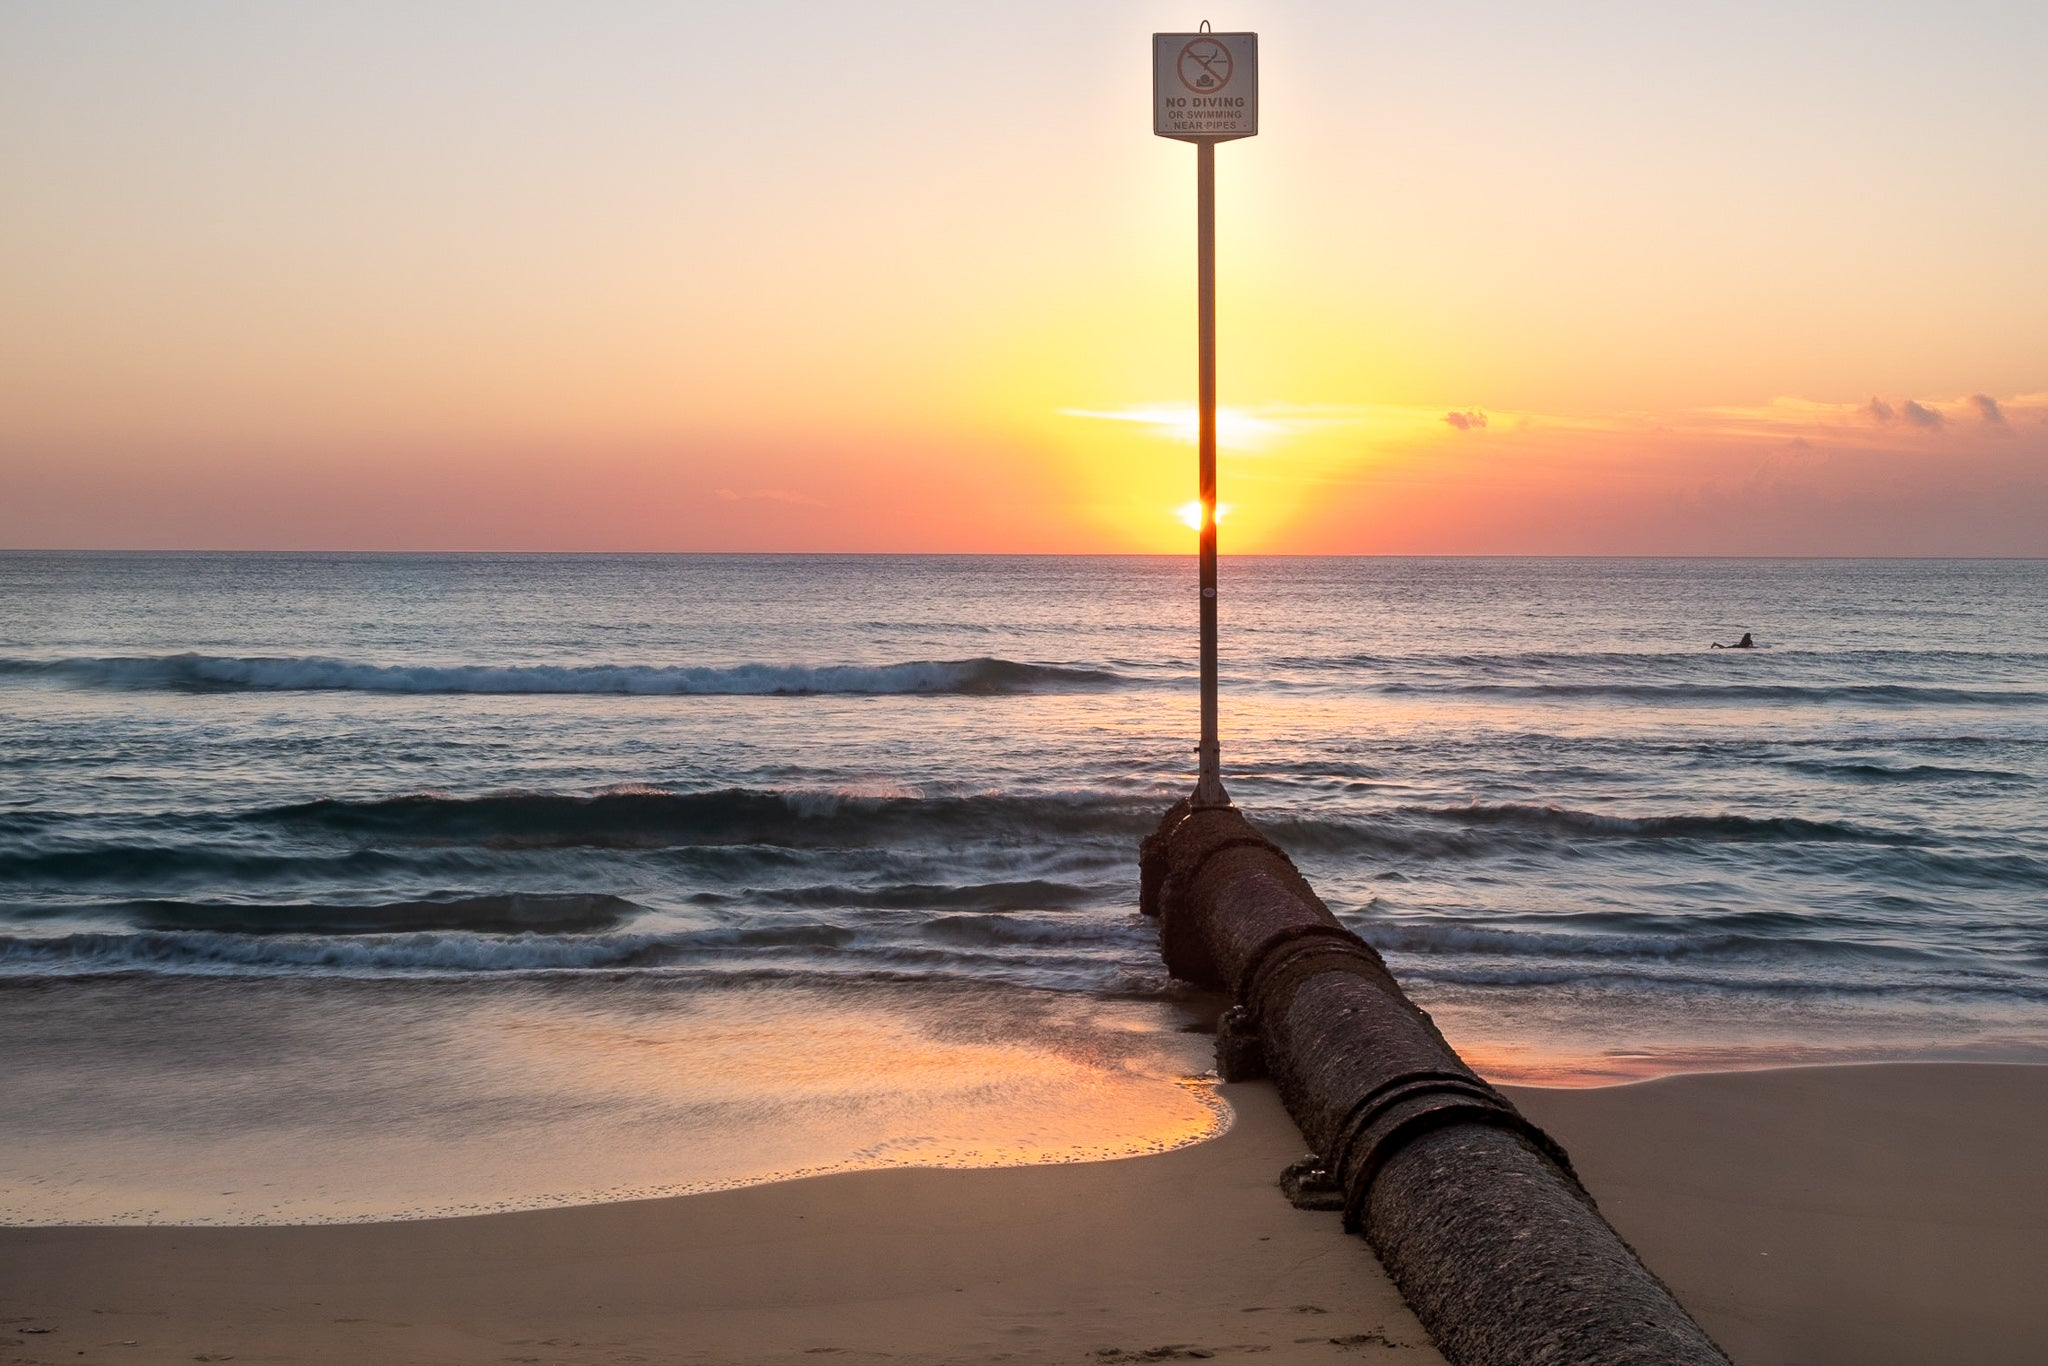 Sunrise photo from the 11th March 2019 at the pipes on Manly beach in Sydney